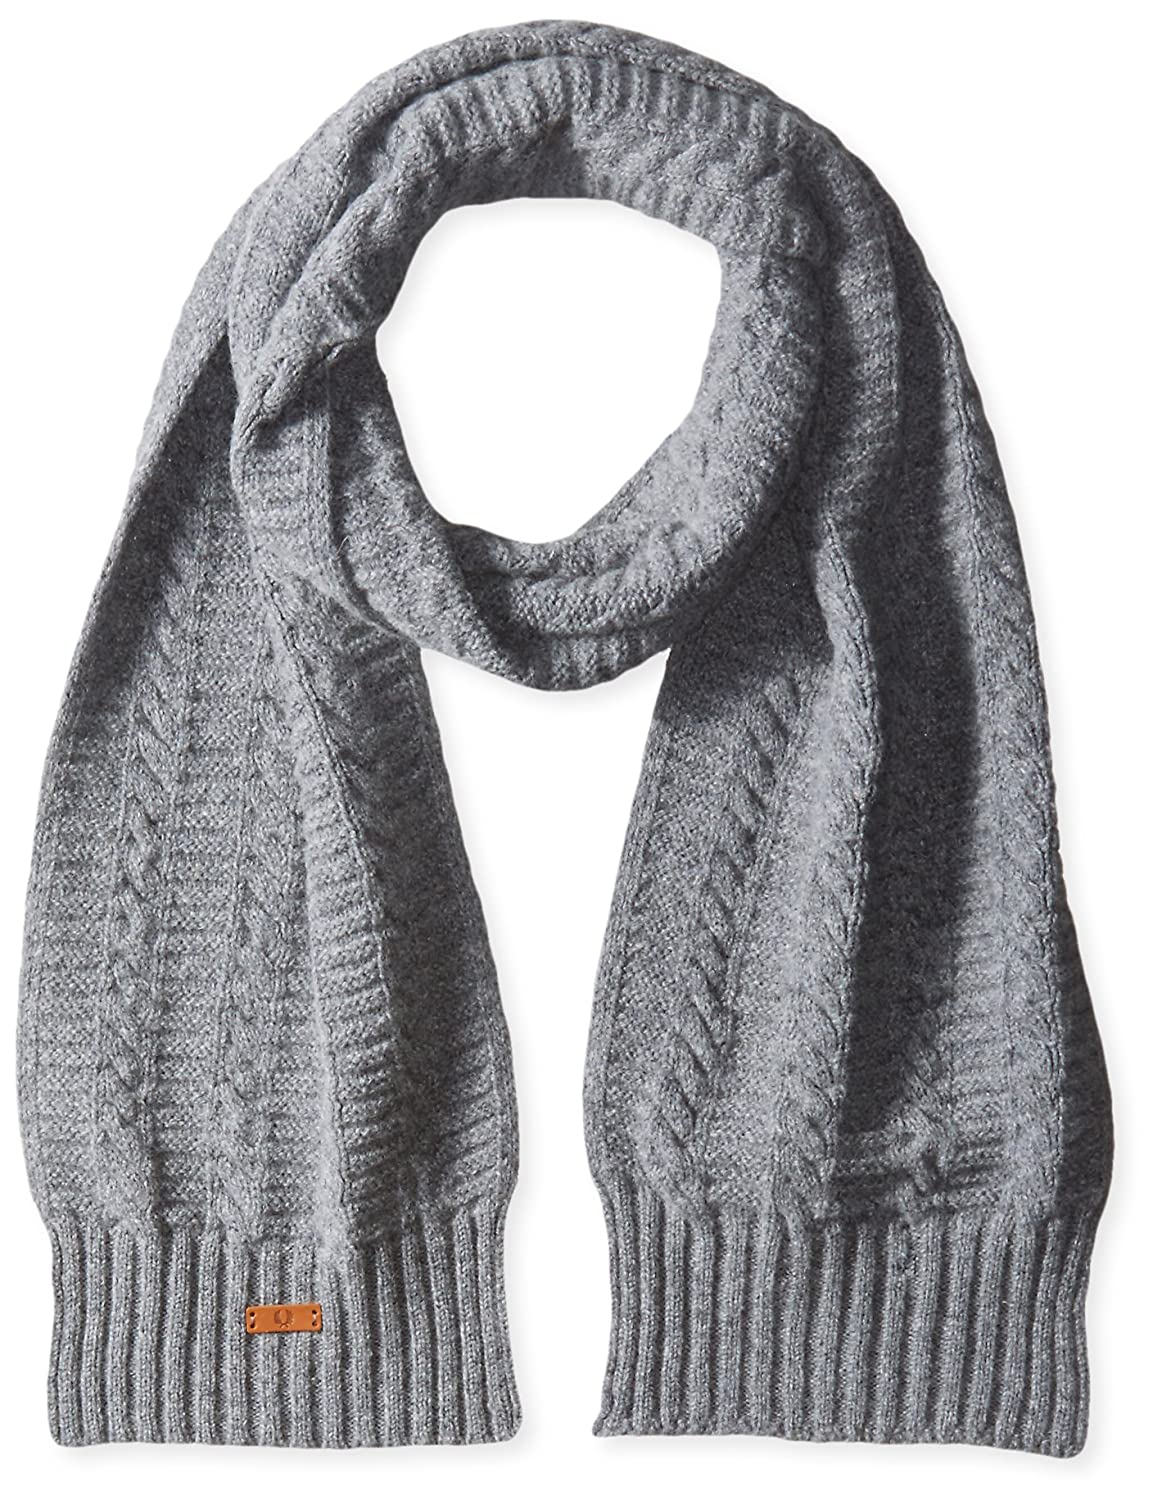 Fred Perry Men's Filey Gansey Scarf Grey Marl One Size C7115